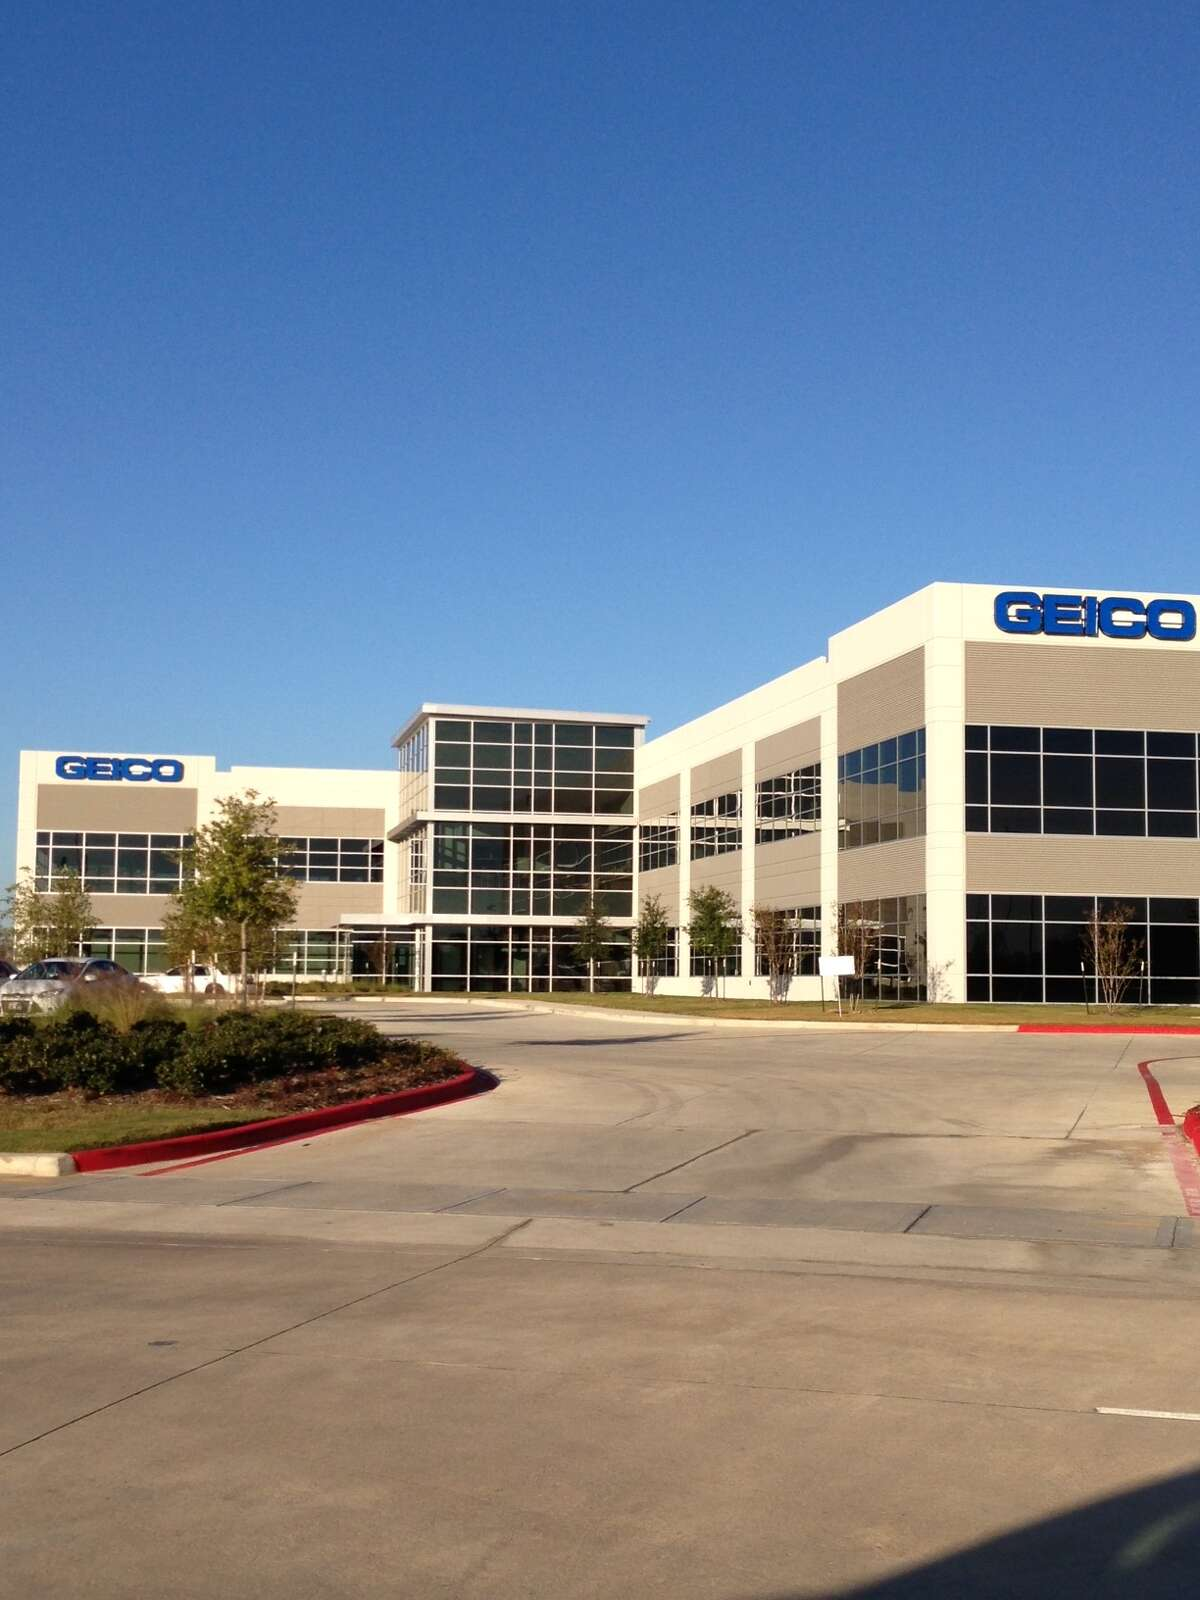 Geico has leased the entire Mason Creek Office Center I building at 21420 Merchants Way near Mason Road and Interstate 10 for a new claims operations center.